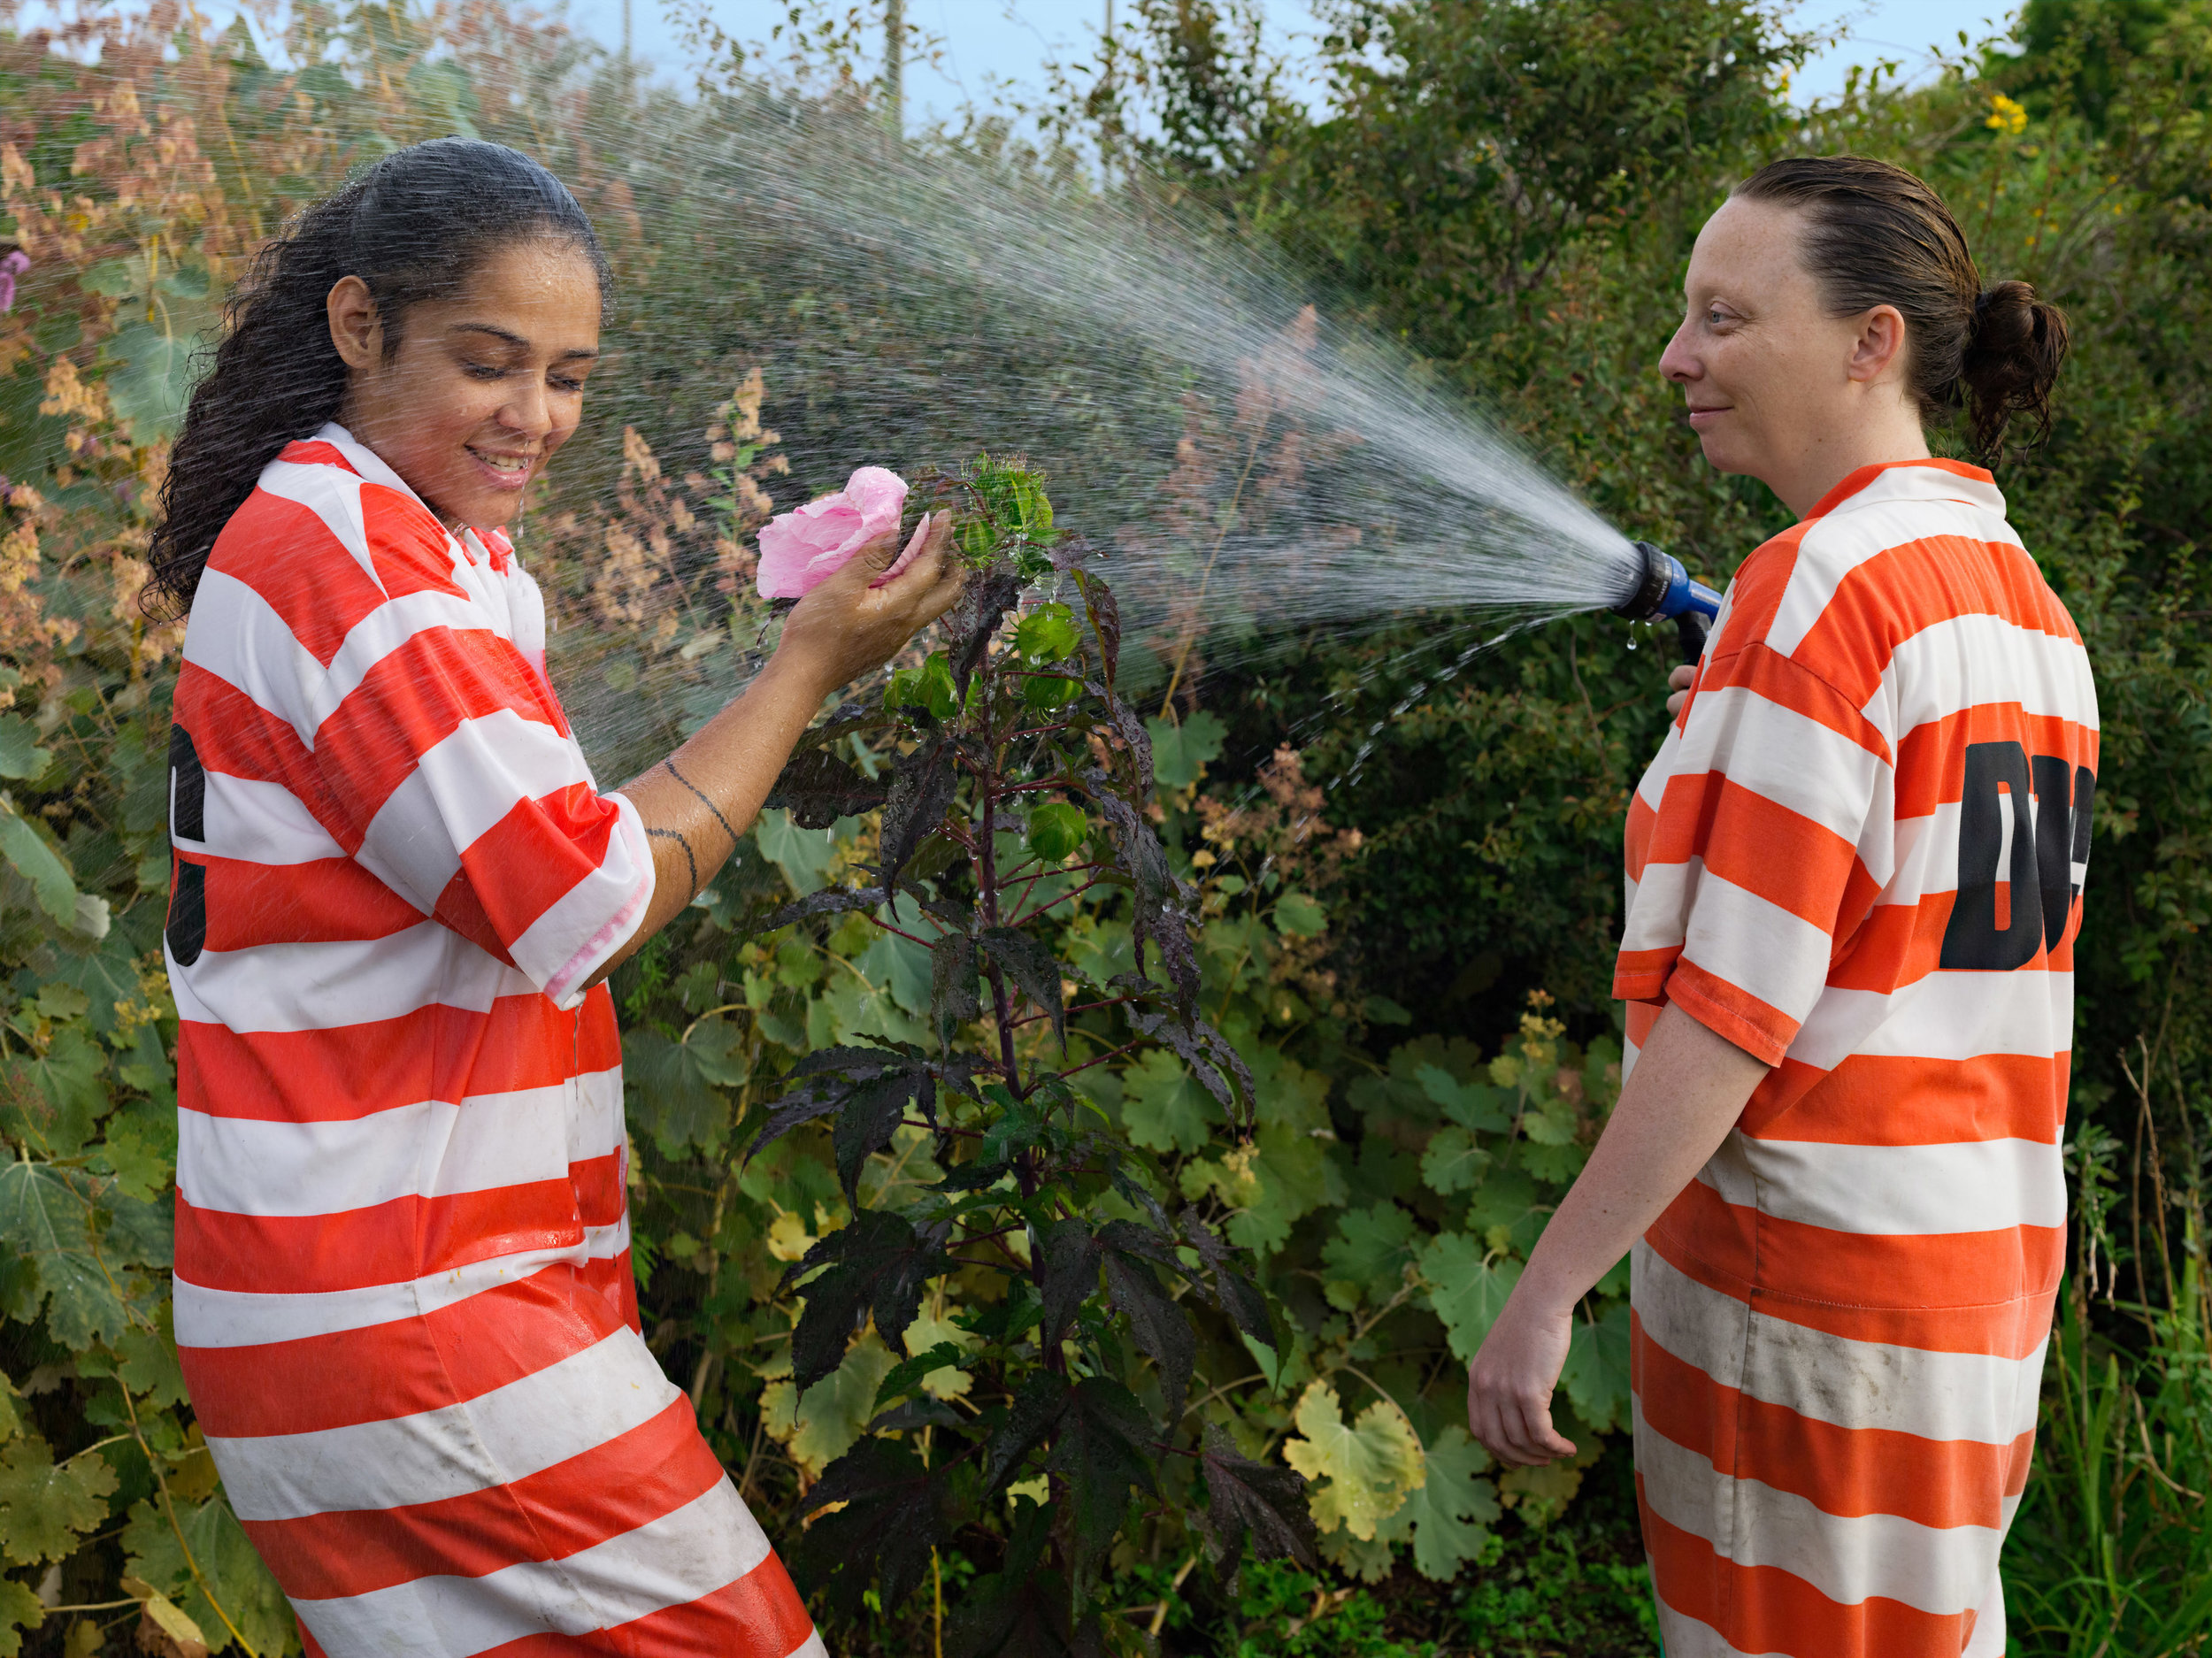 Lucas Foglia, Vanessa and Lauren watering, GreenHouse Program, Rikers Island jail complex, New York, 2014